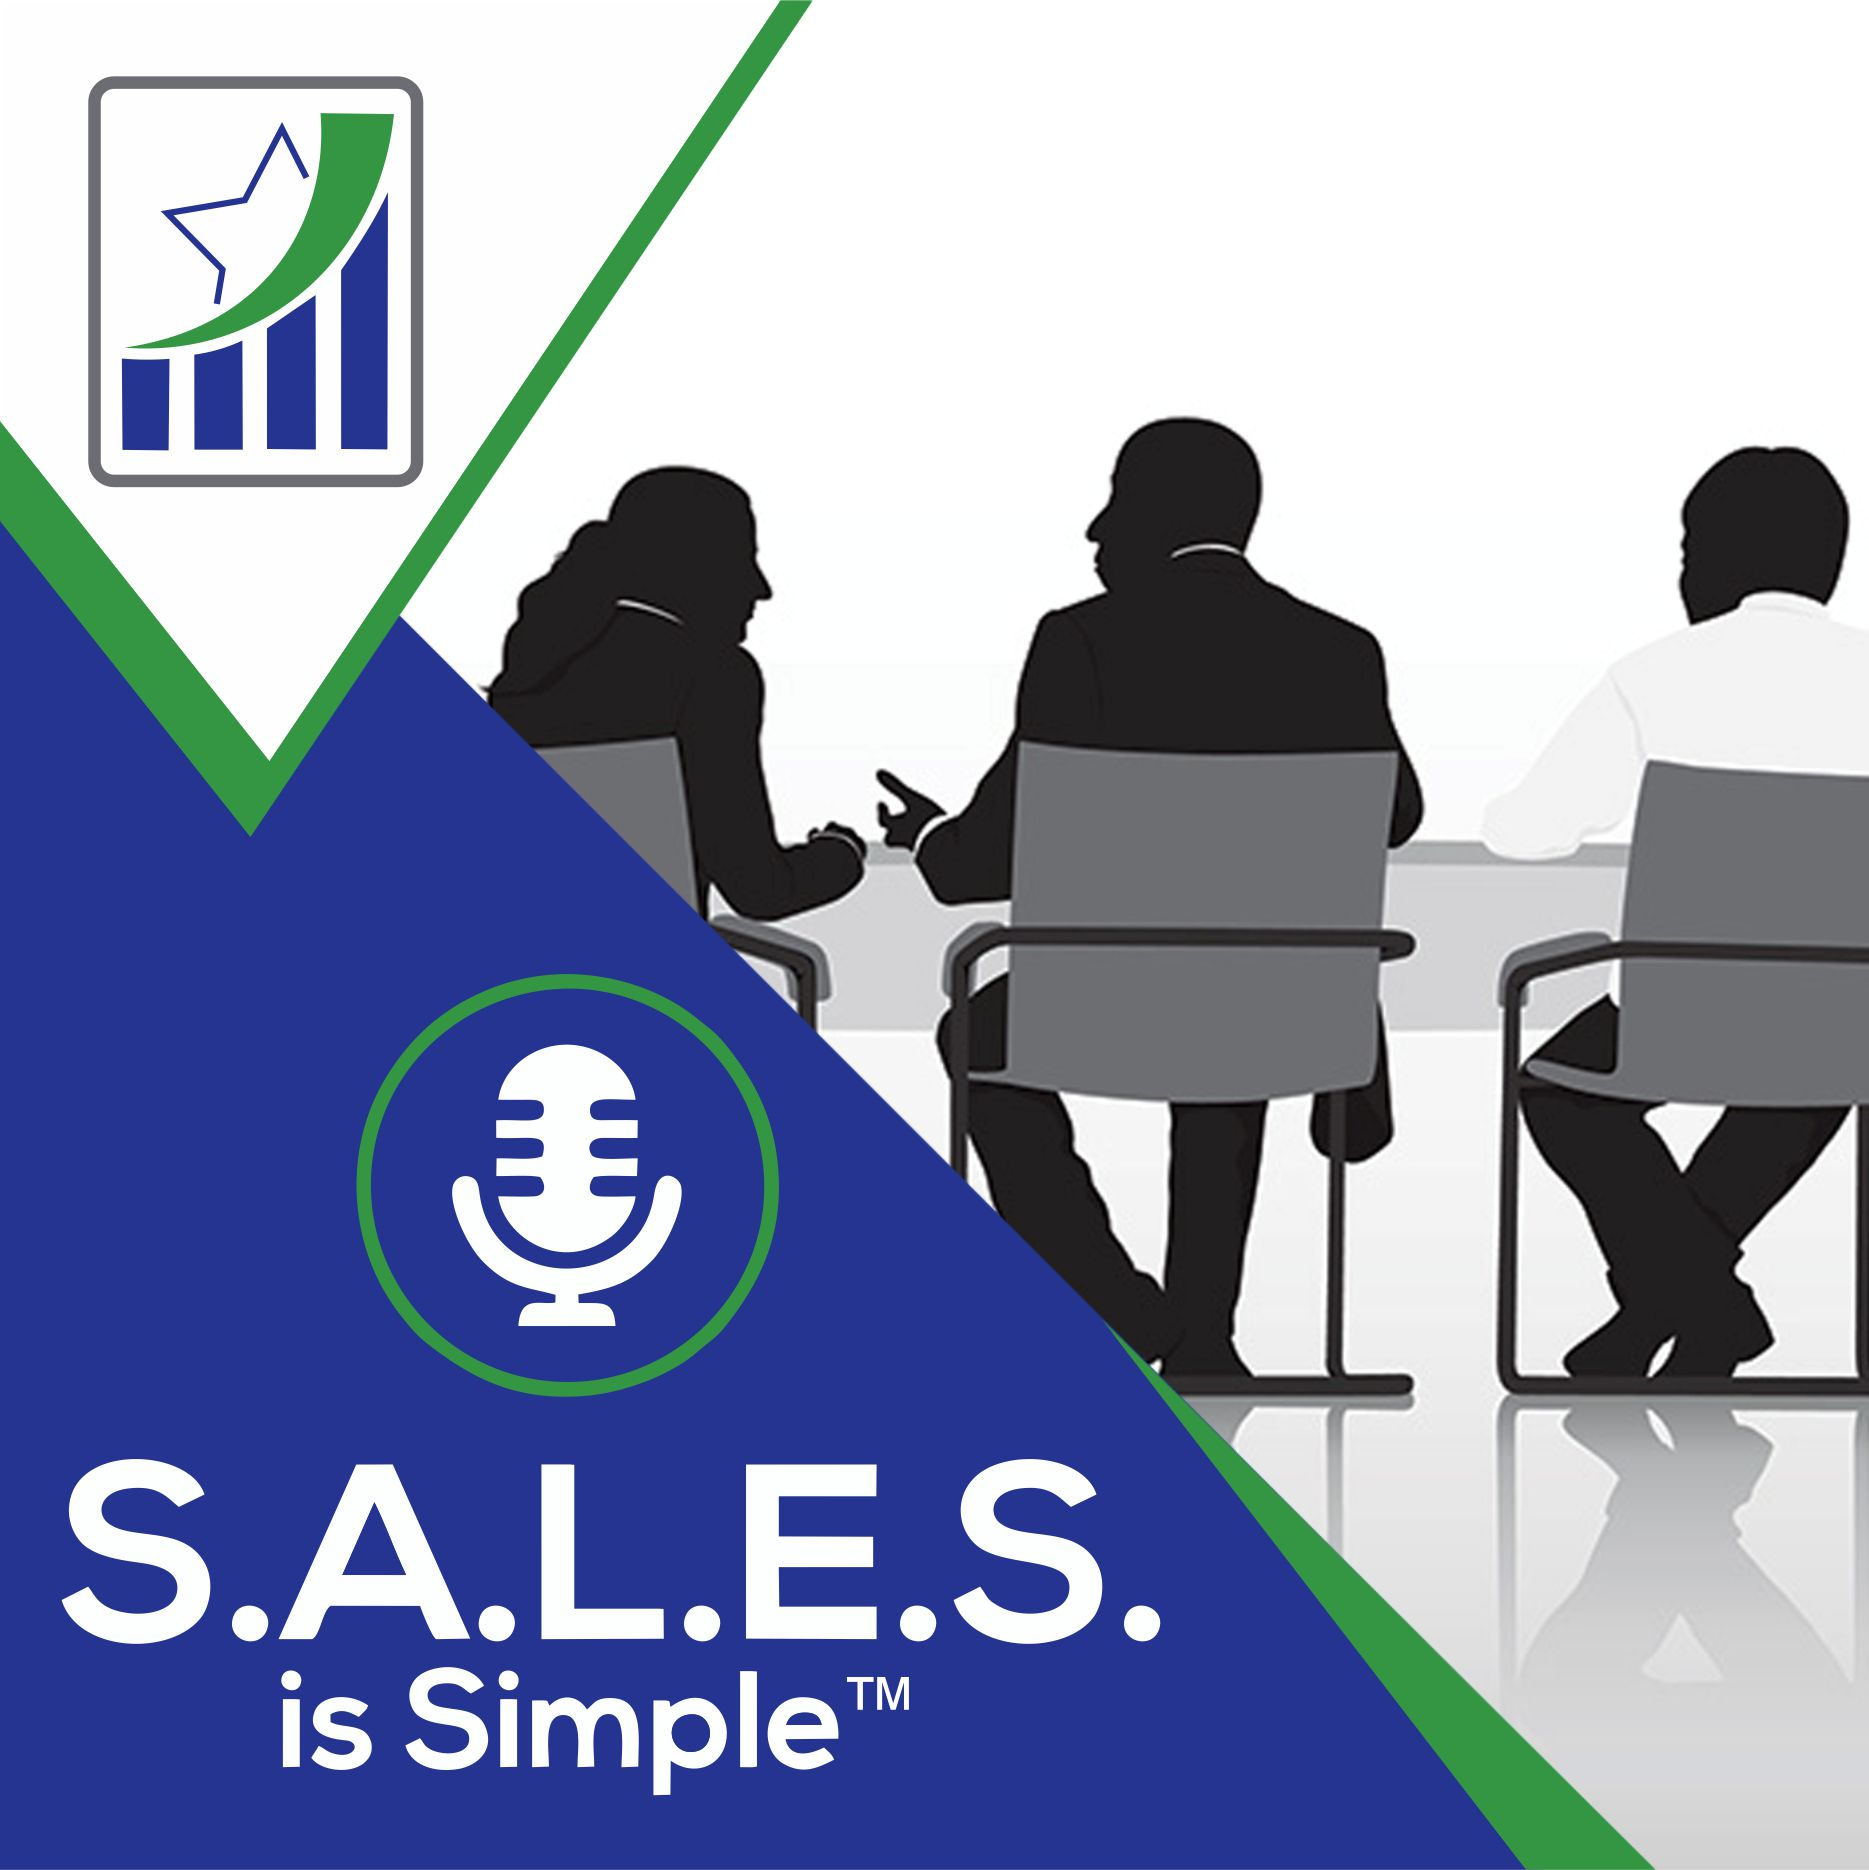 SALES_is_Simple_Podcast_Cover.jpg